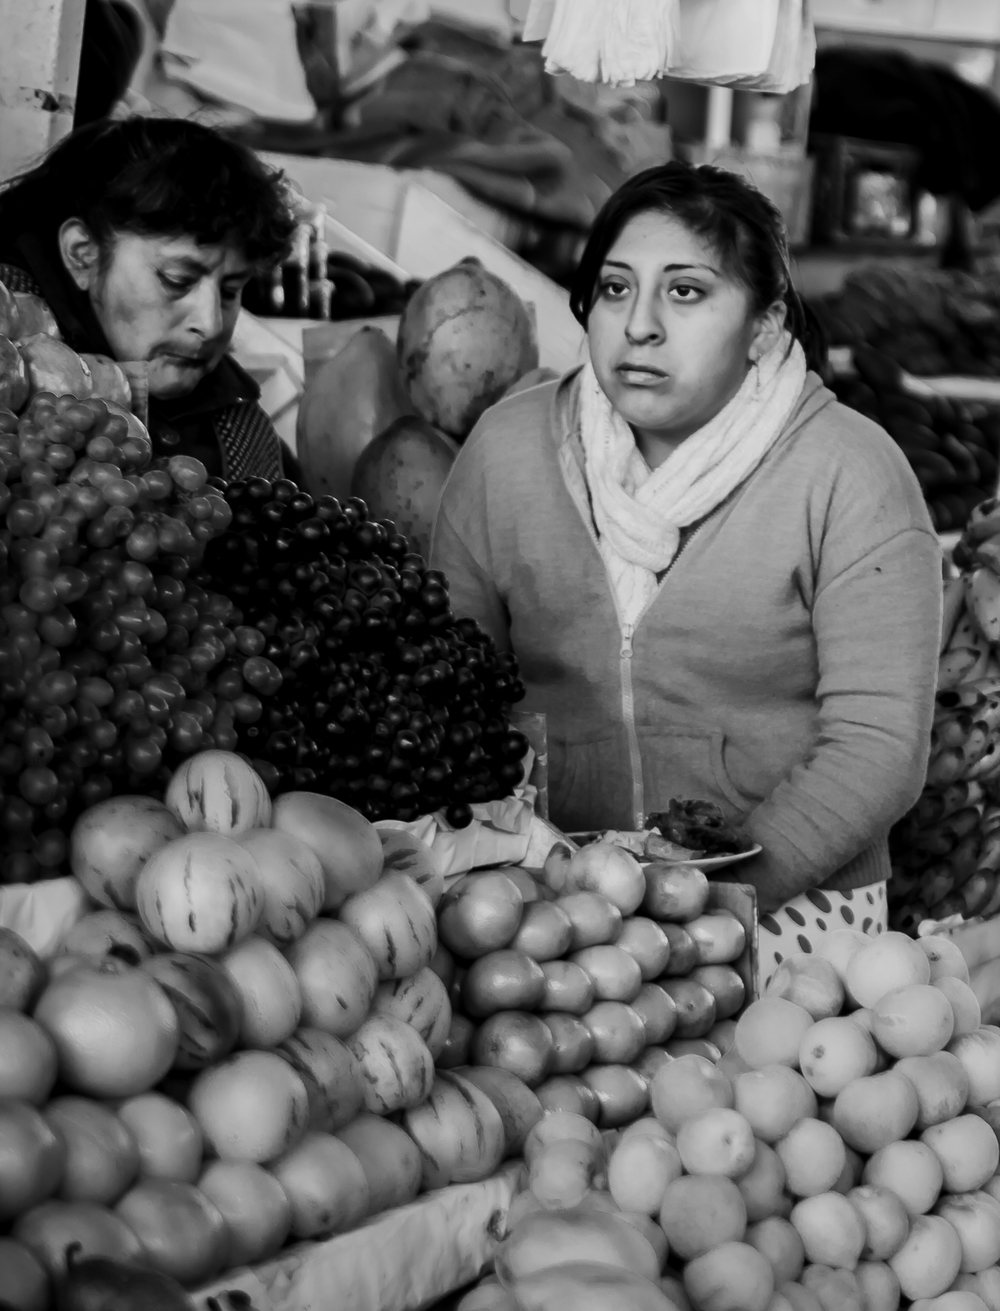 A daughter and her mother during a days trade.